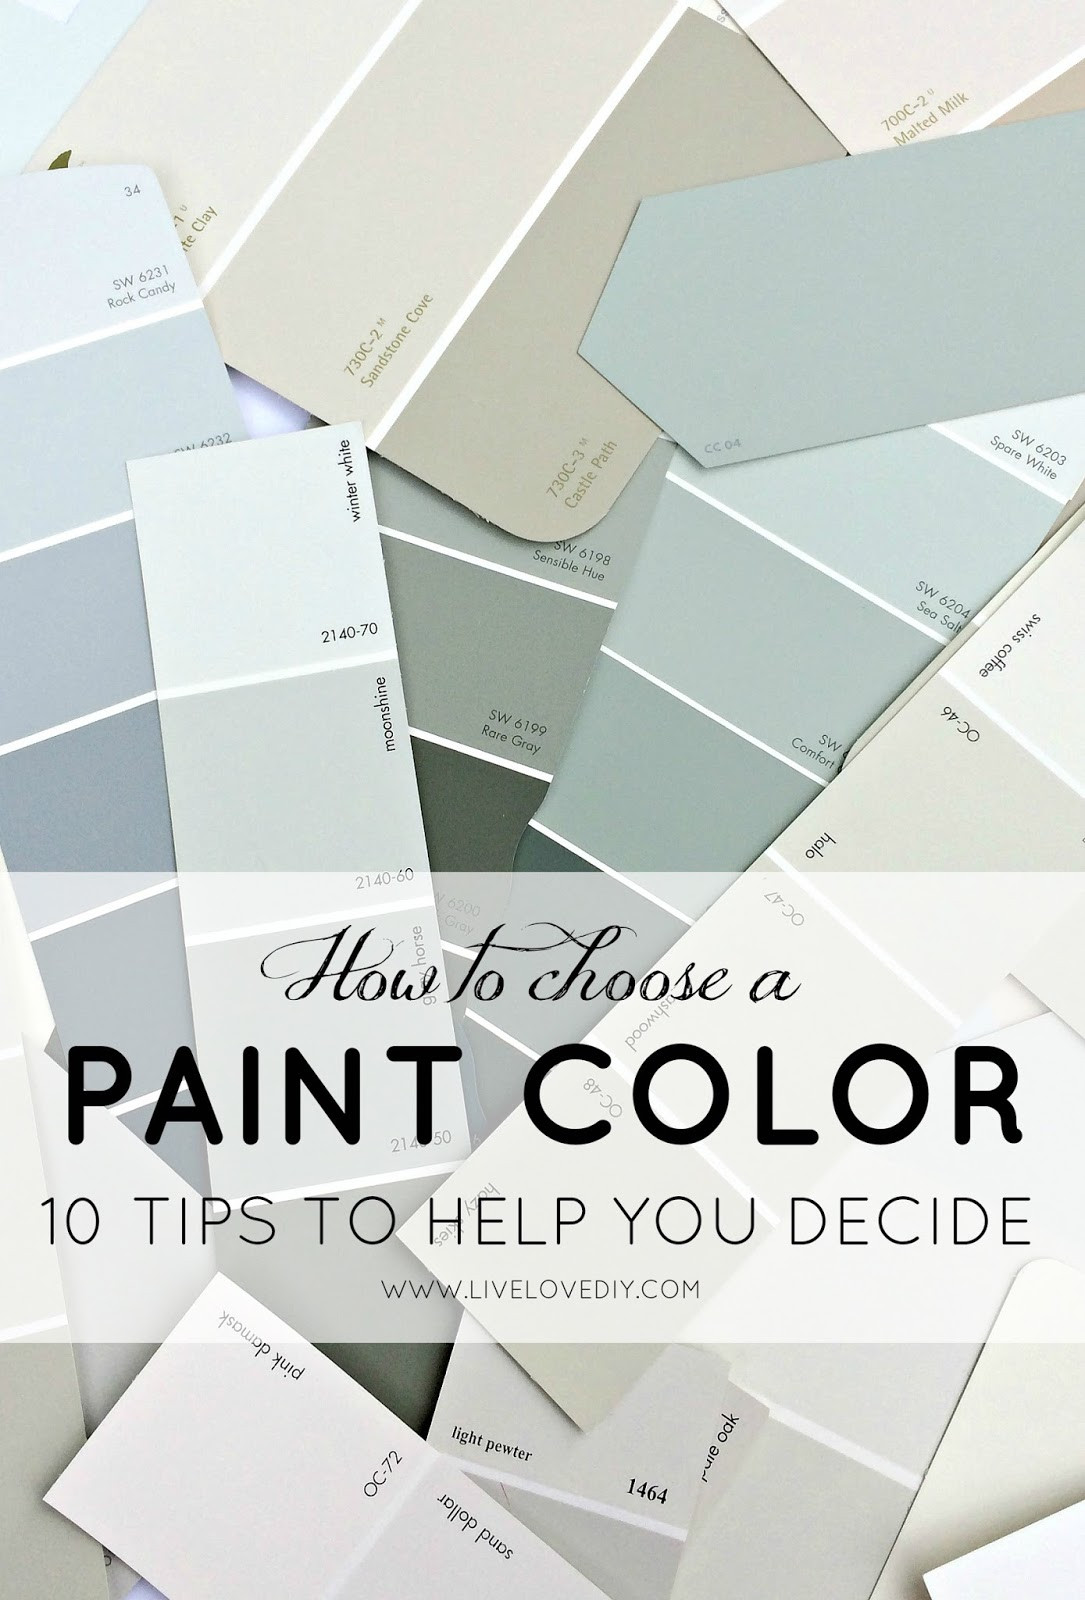 Best ideas about Choosing Paint Colors . Save or Pin How To Choose a Paint Color 10 Tips To Help You Decide Now.